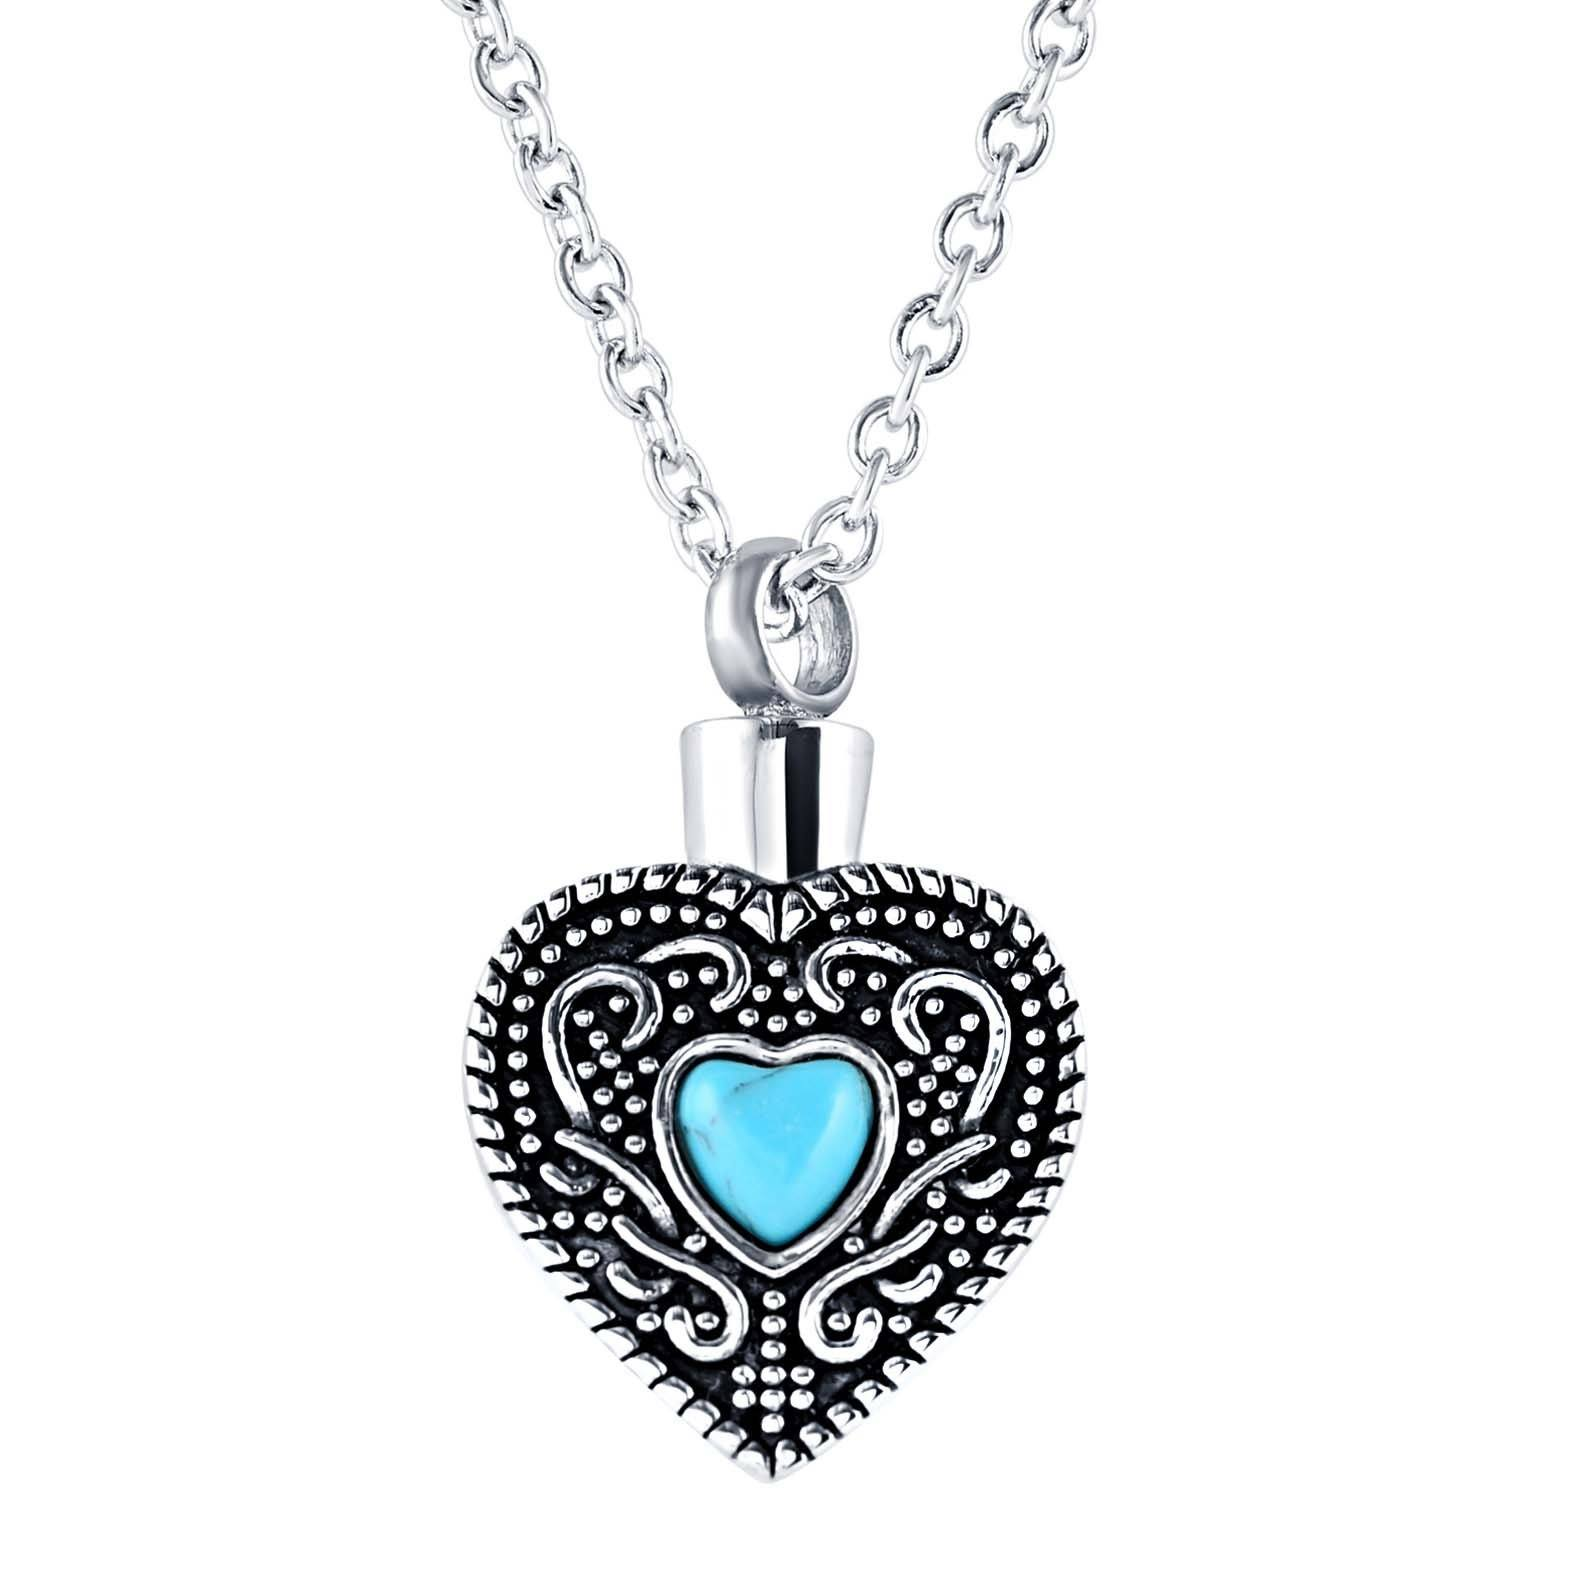 Blue Heart Cremation Necklace that holds Ashes